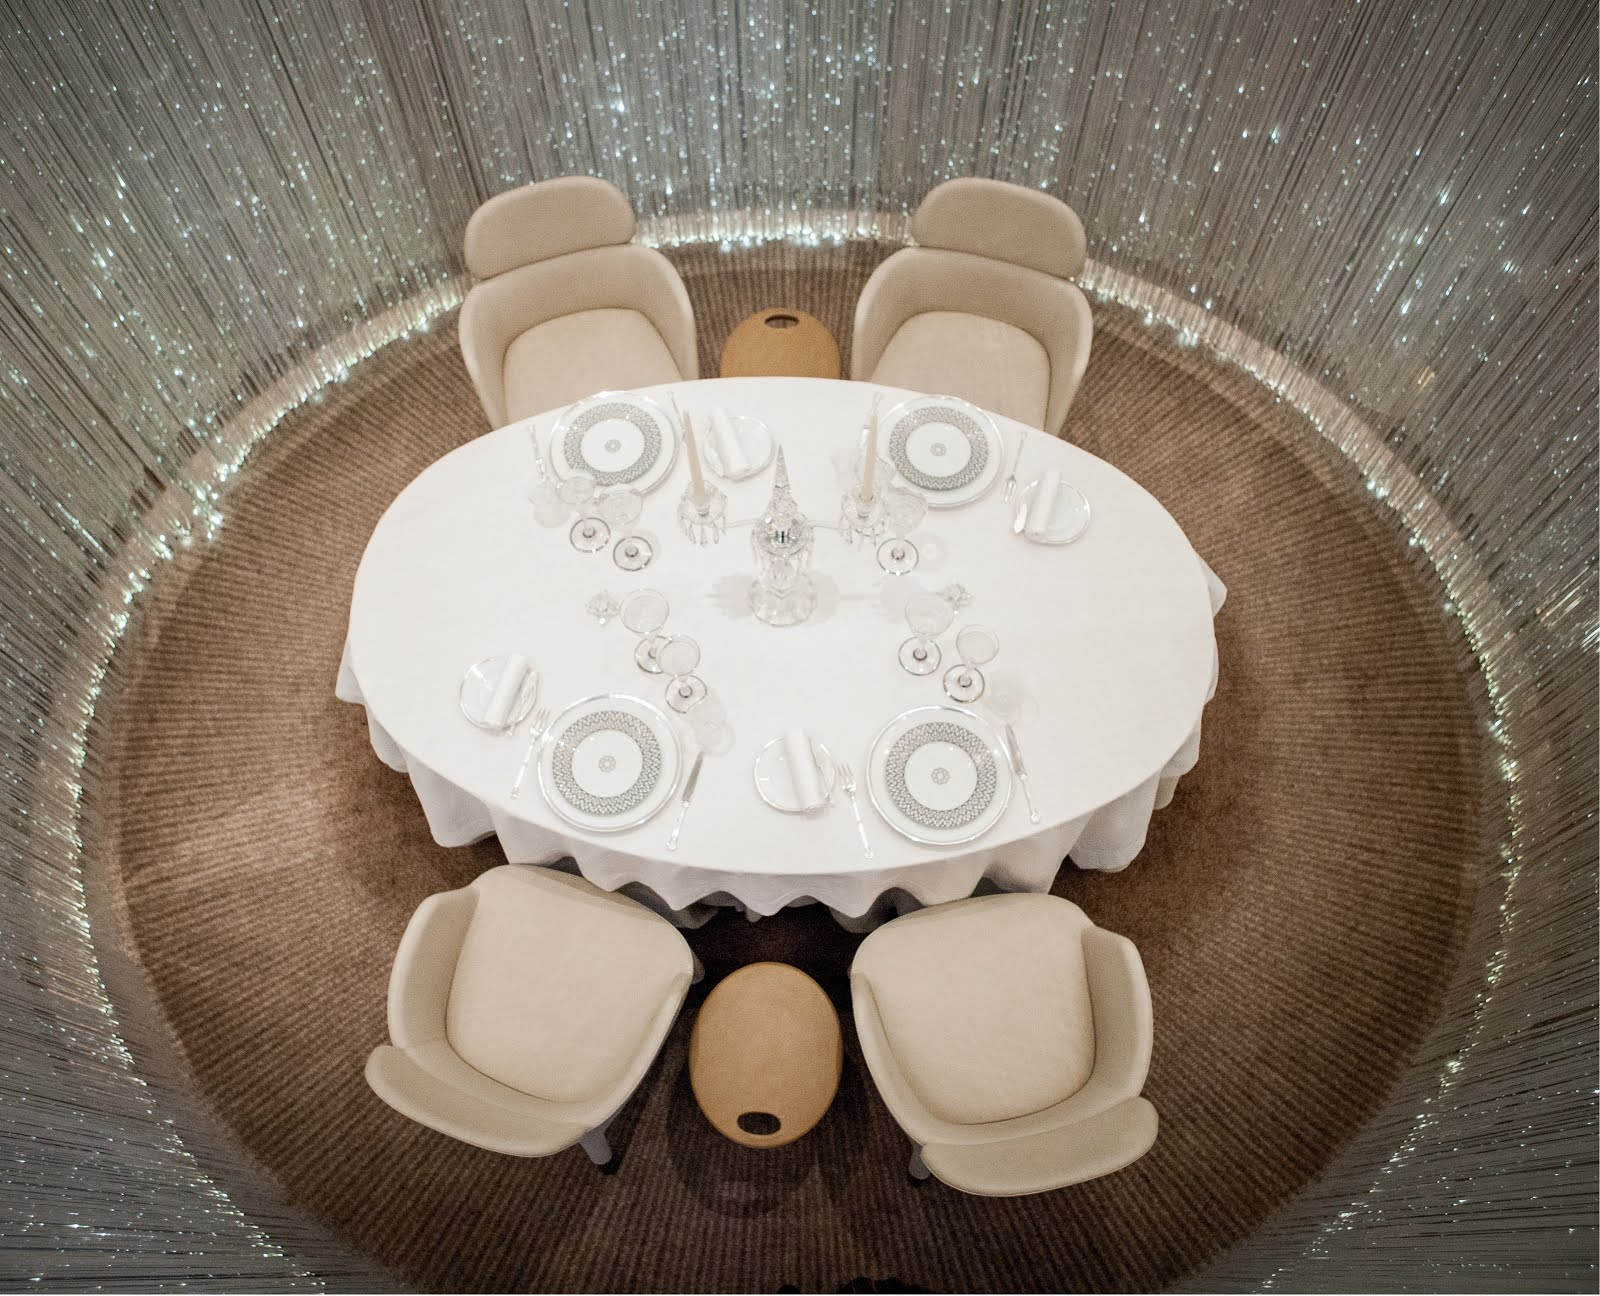 3 Michelin starred lunch at restaurant Alain Ducasse, the Dorchester. Private dining